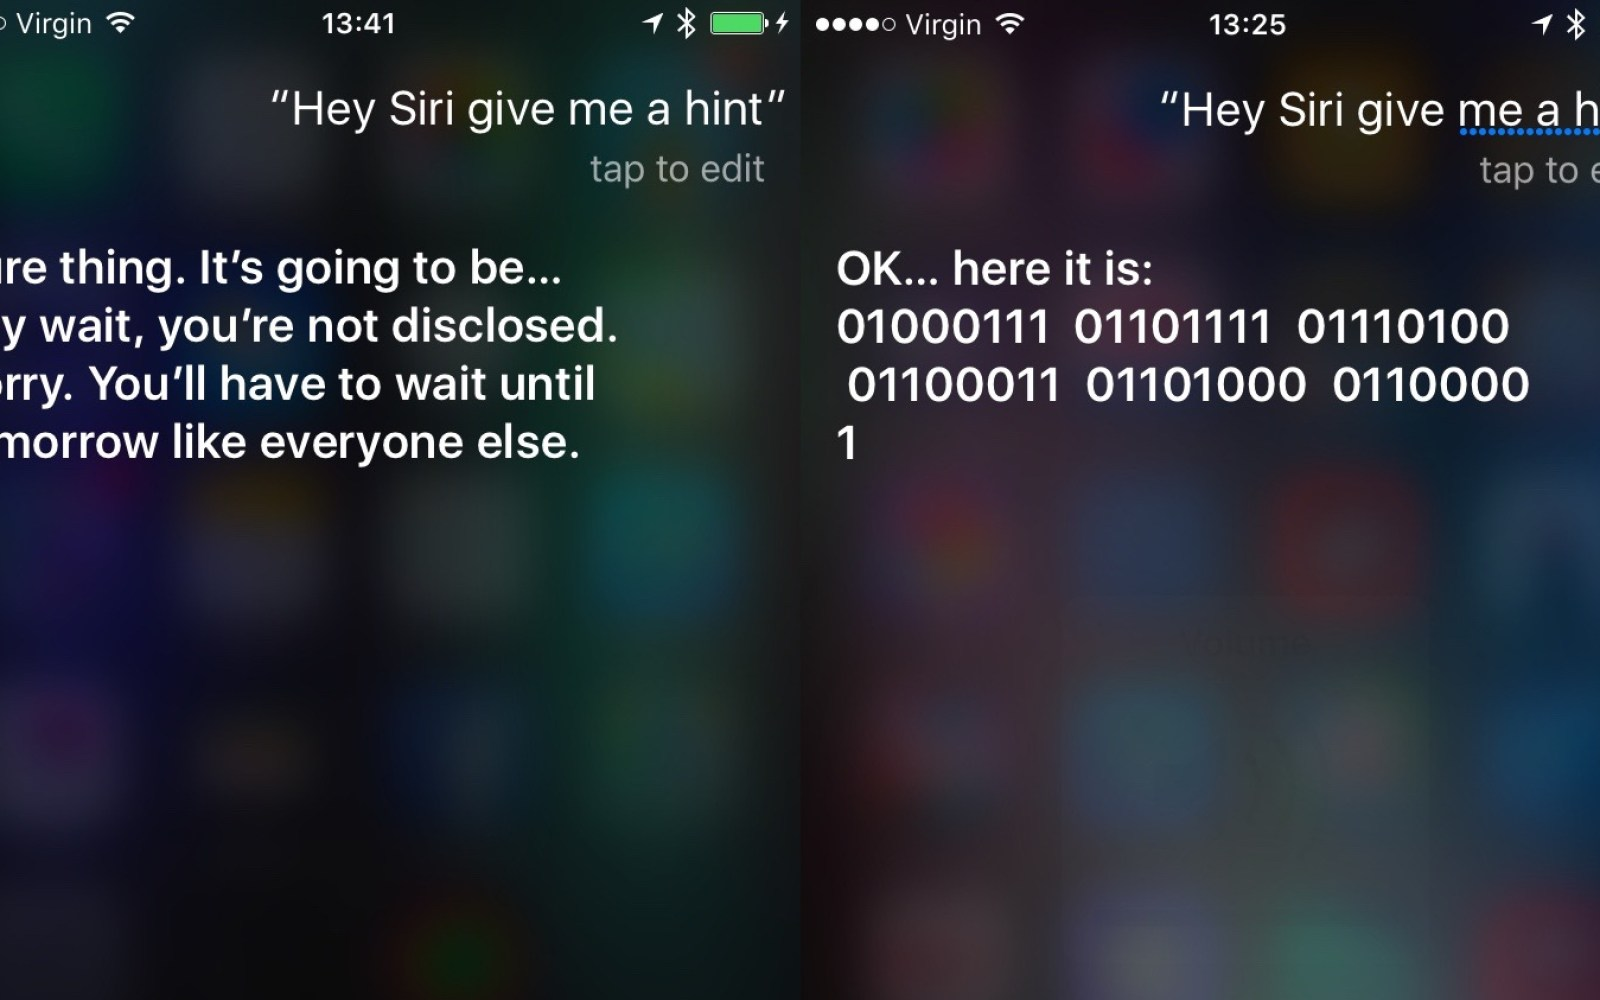 Siri giving some more 'hints' ahead of Apple event tomorrow